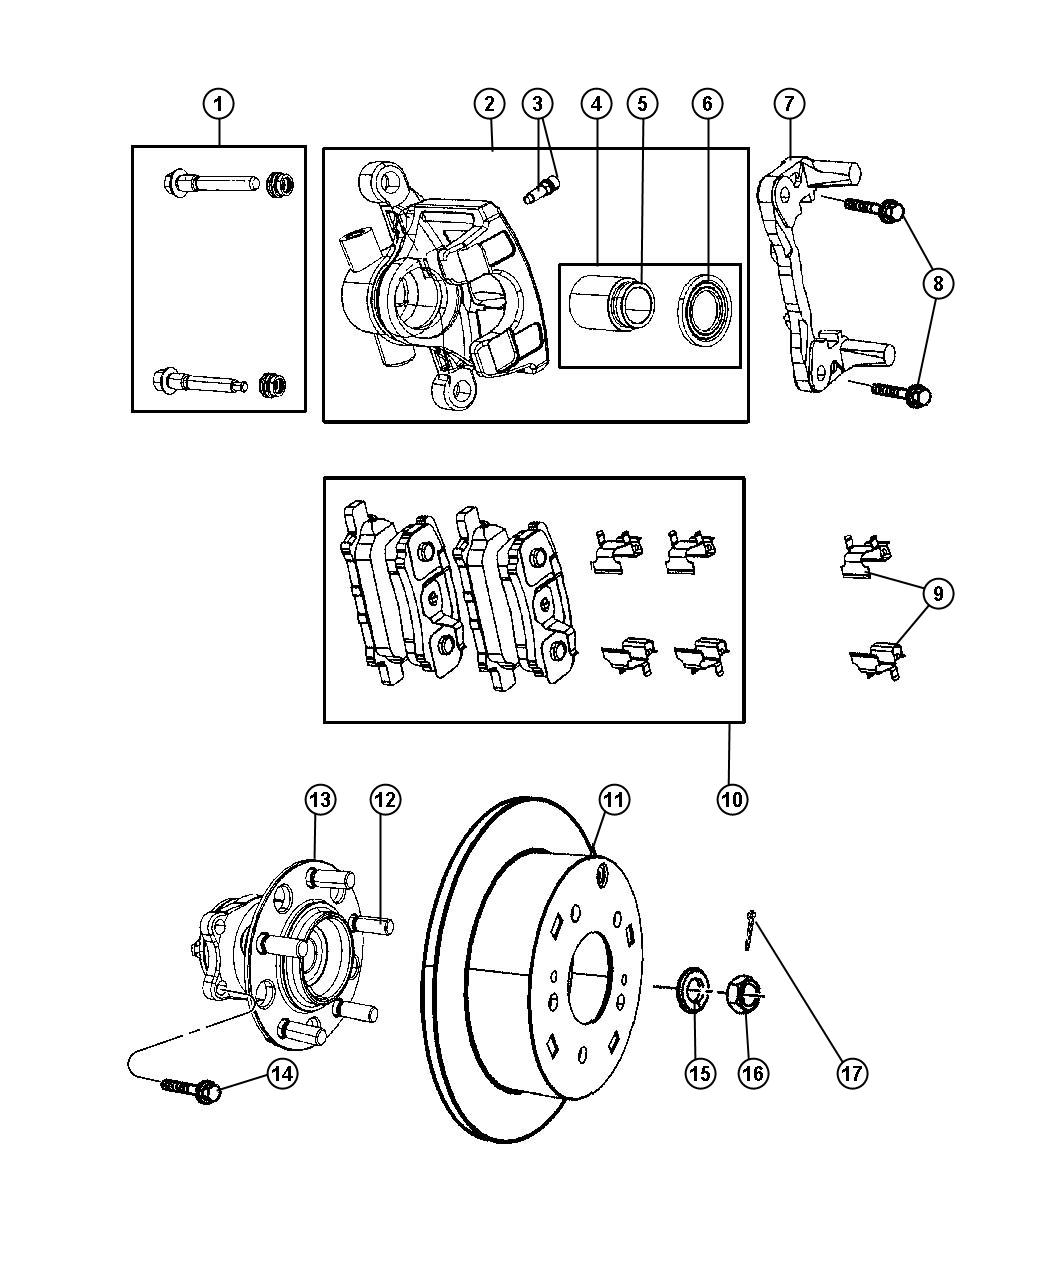 fwd rear suspension diagram